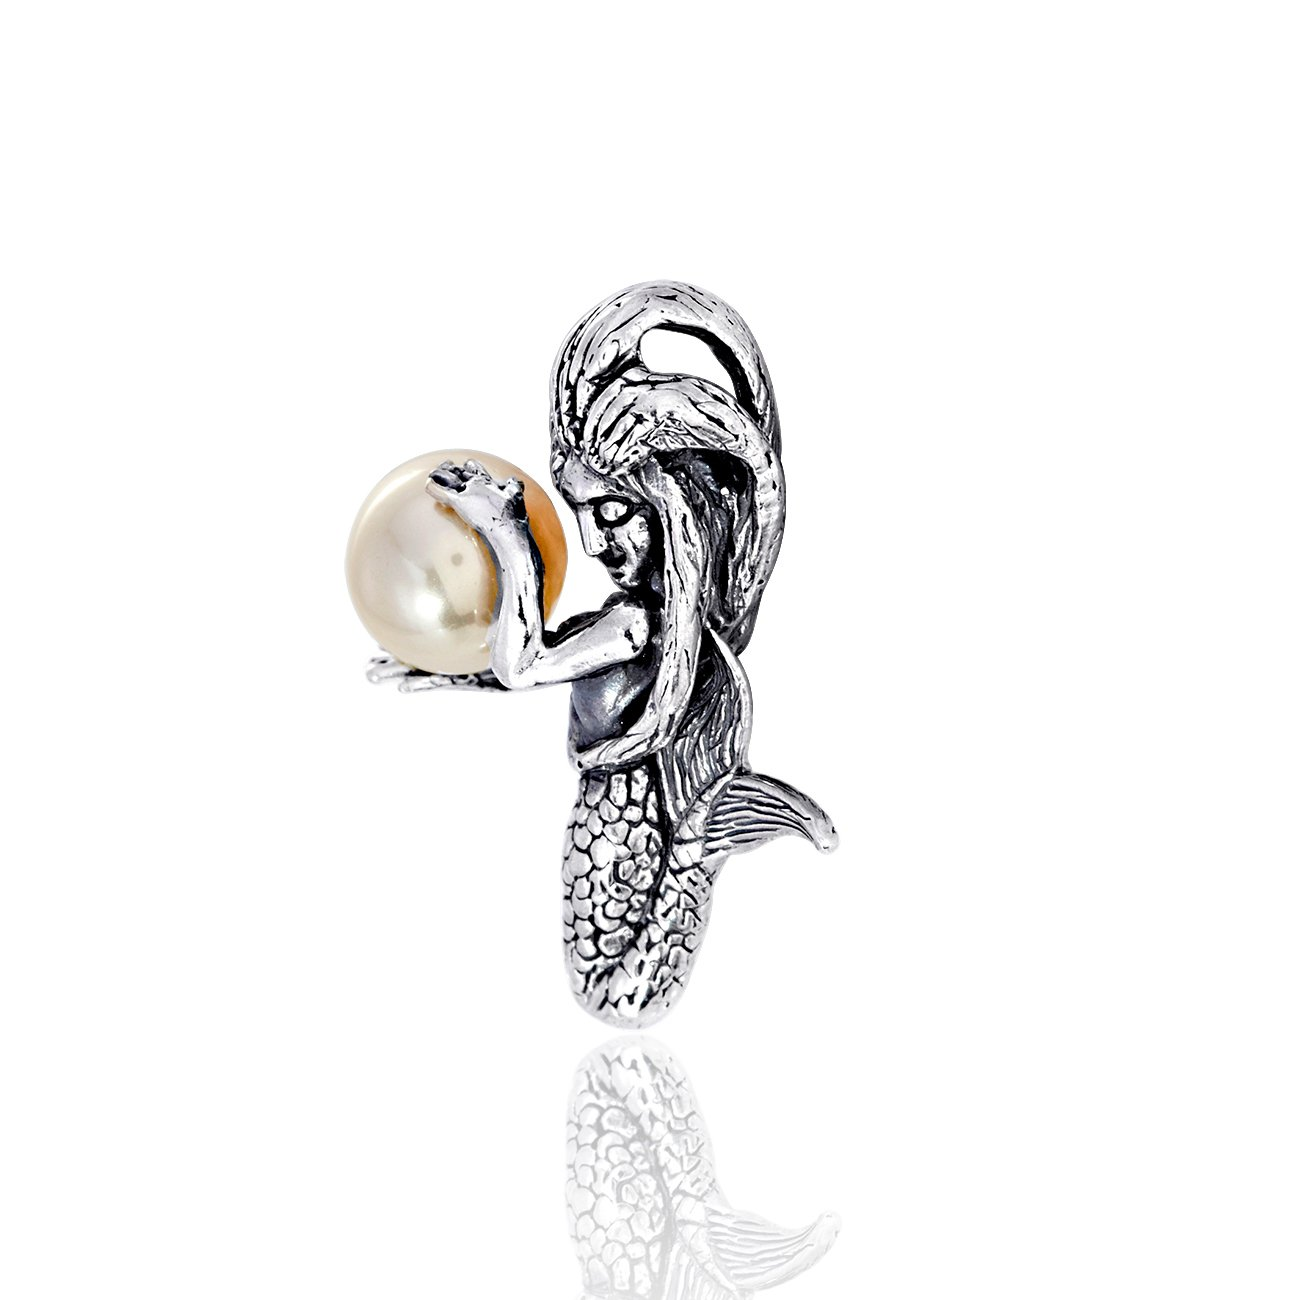 WithLoveSilver 925 Sterling Silver 3D Sleeping Mermaid Holding Simulated Pearl Pendant